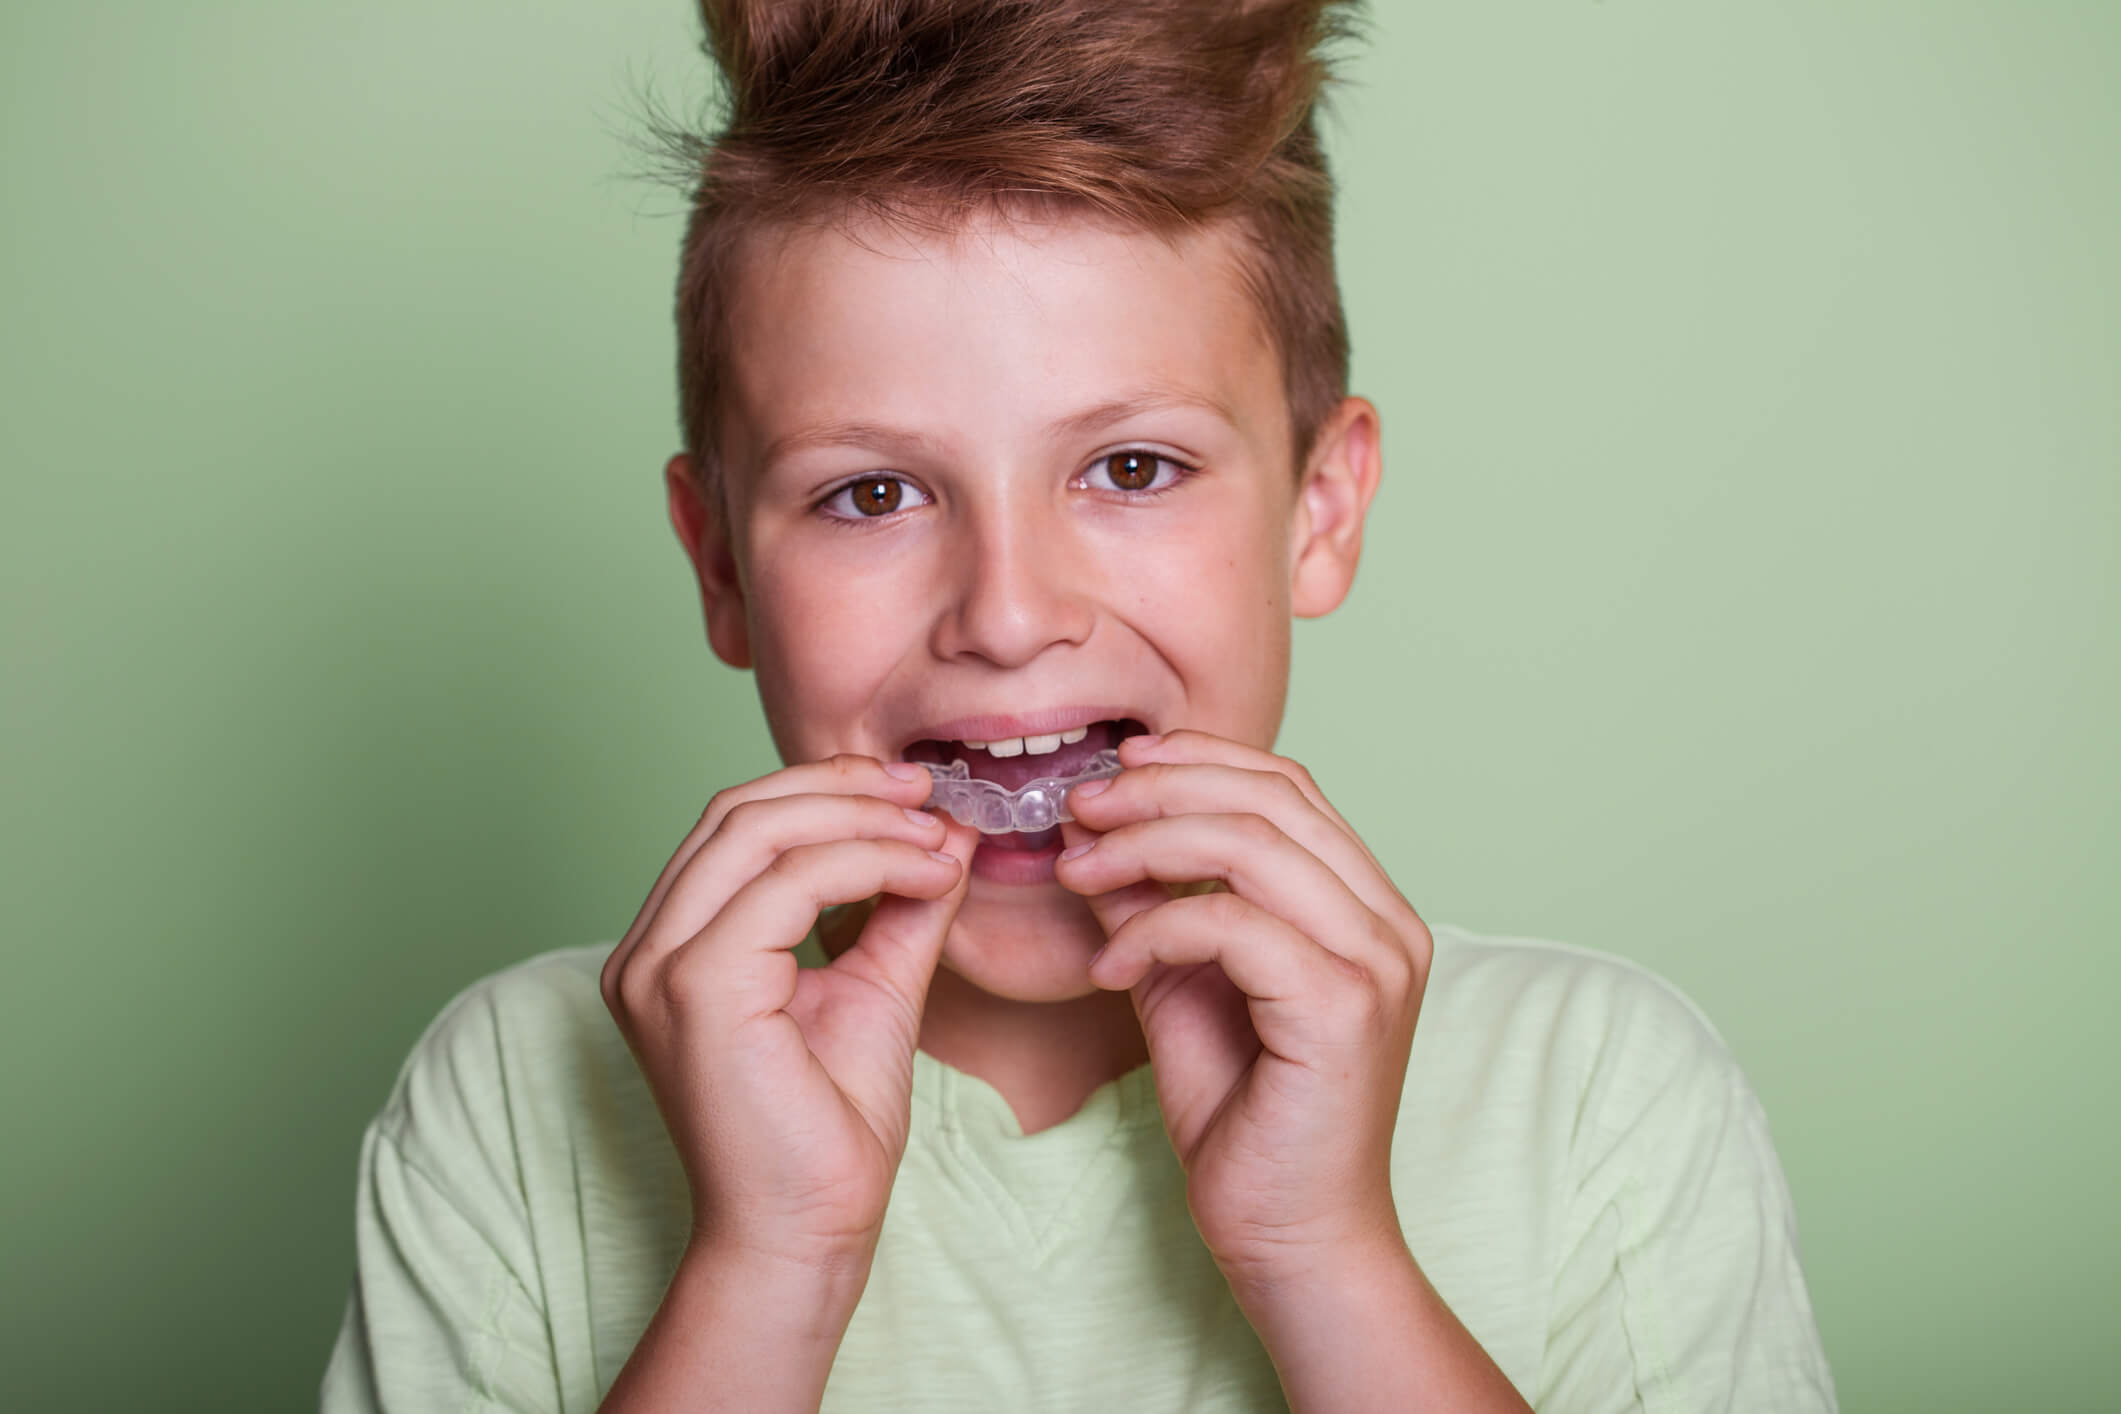 Should my child have a custom-fitted mouthguard for sports?